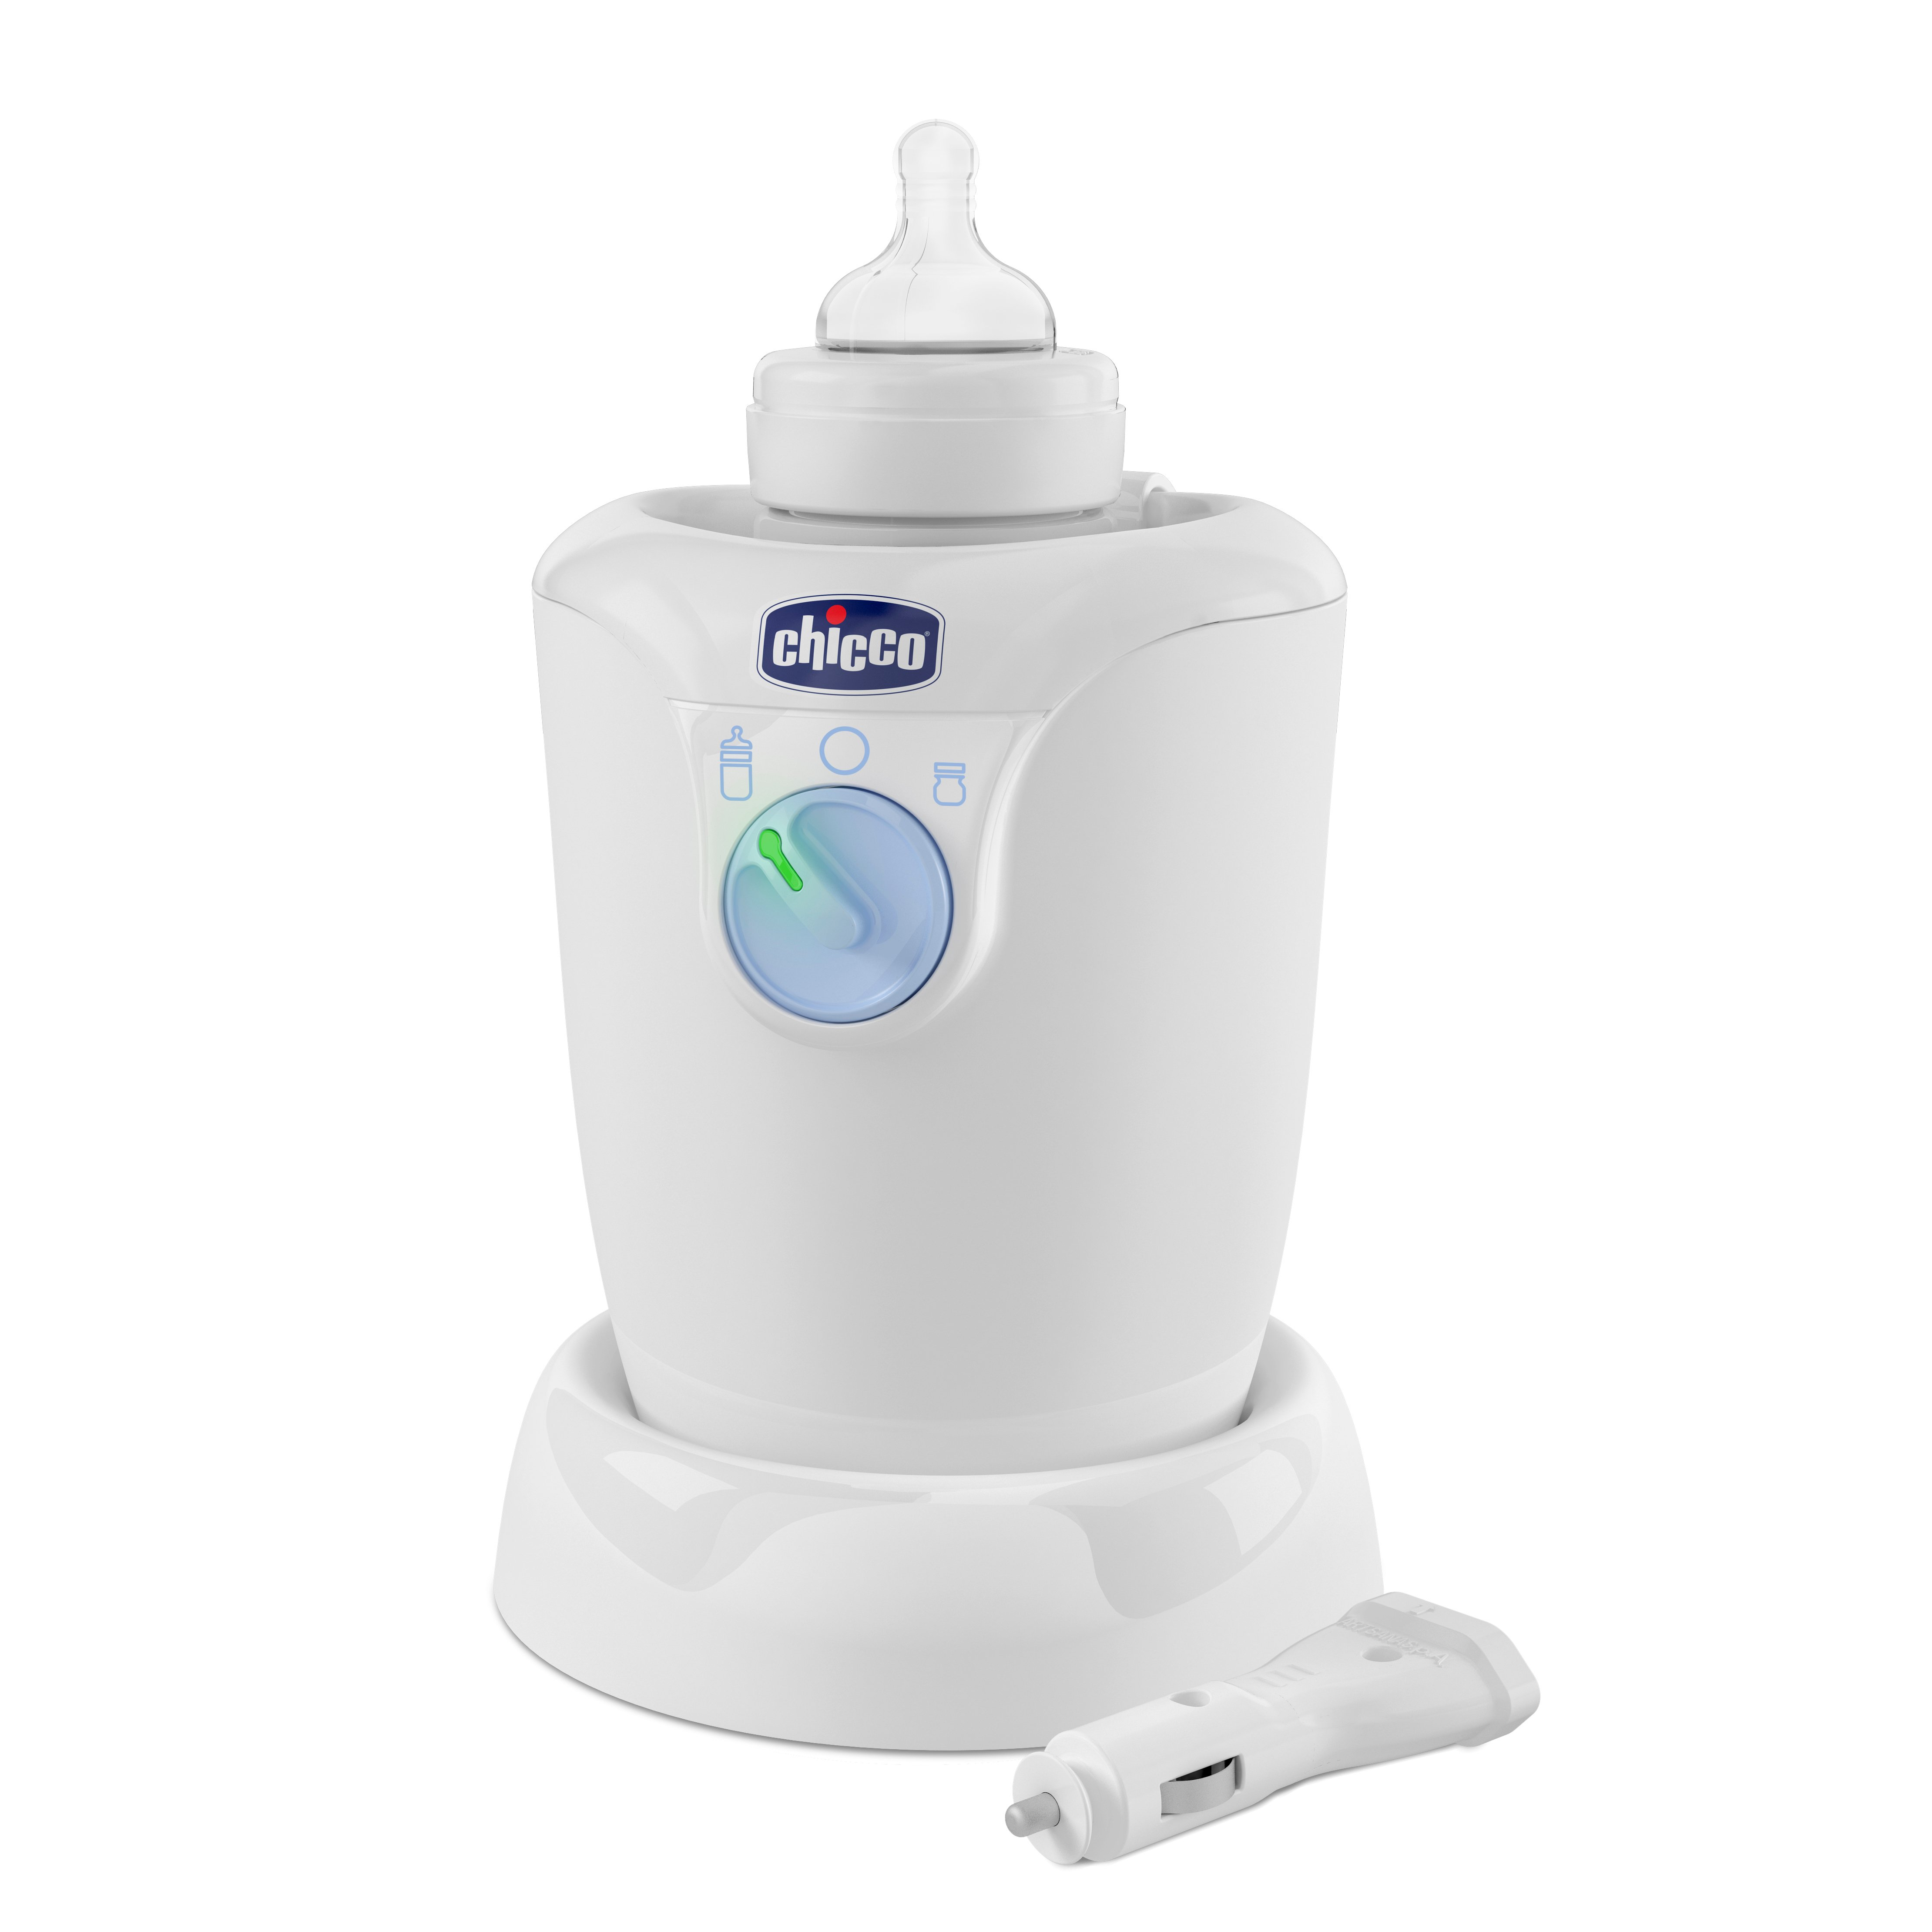 Chicco - Bottle Warmer Home + Car